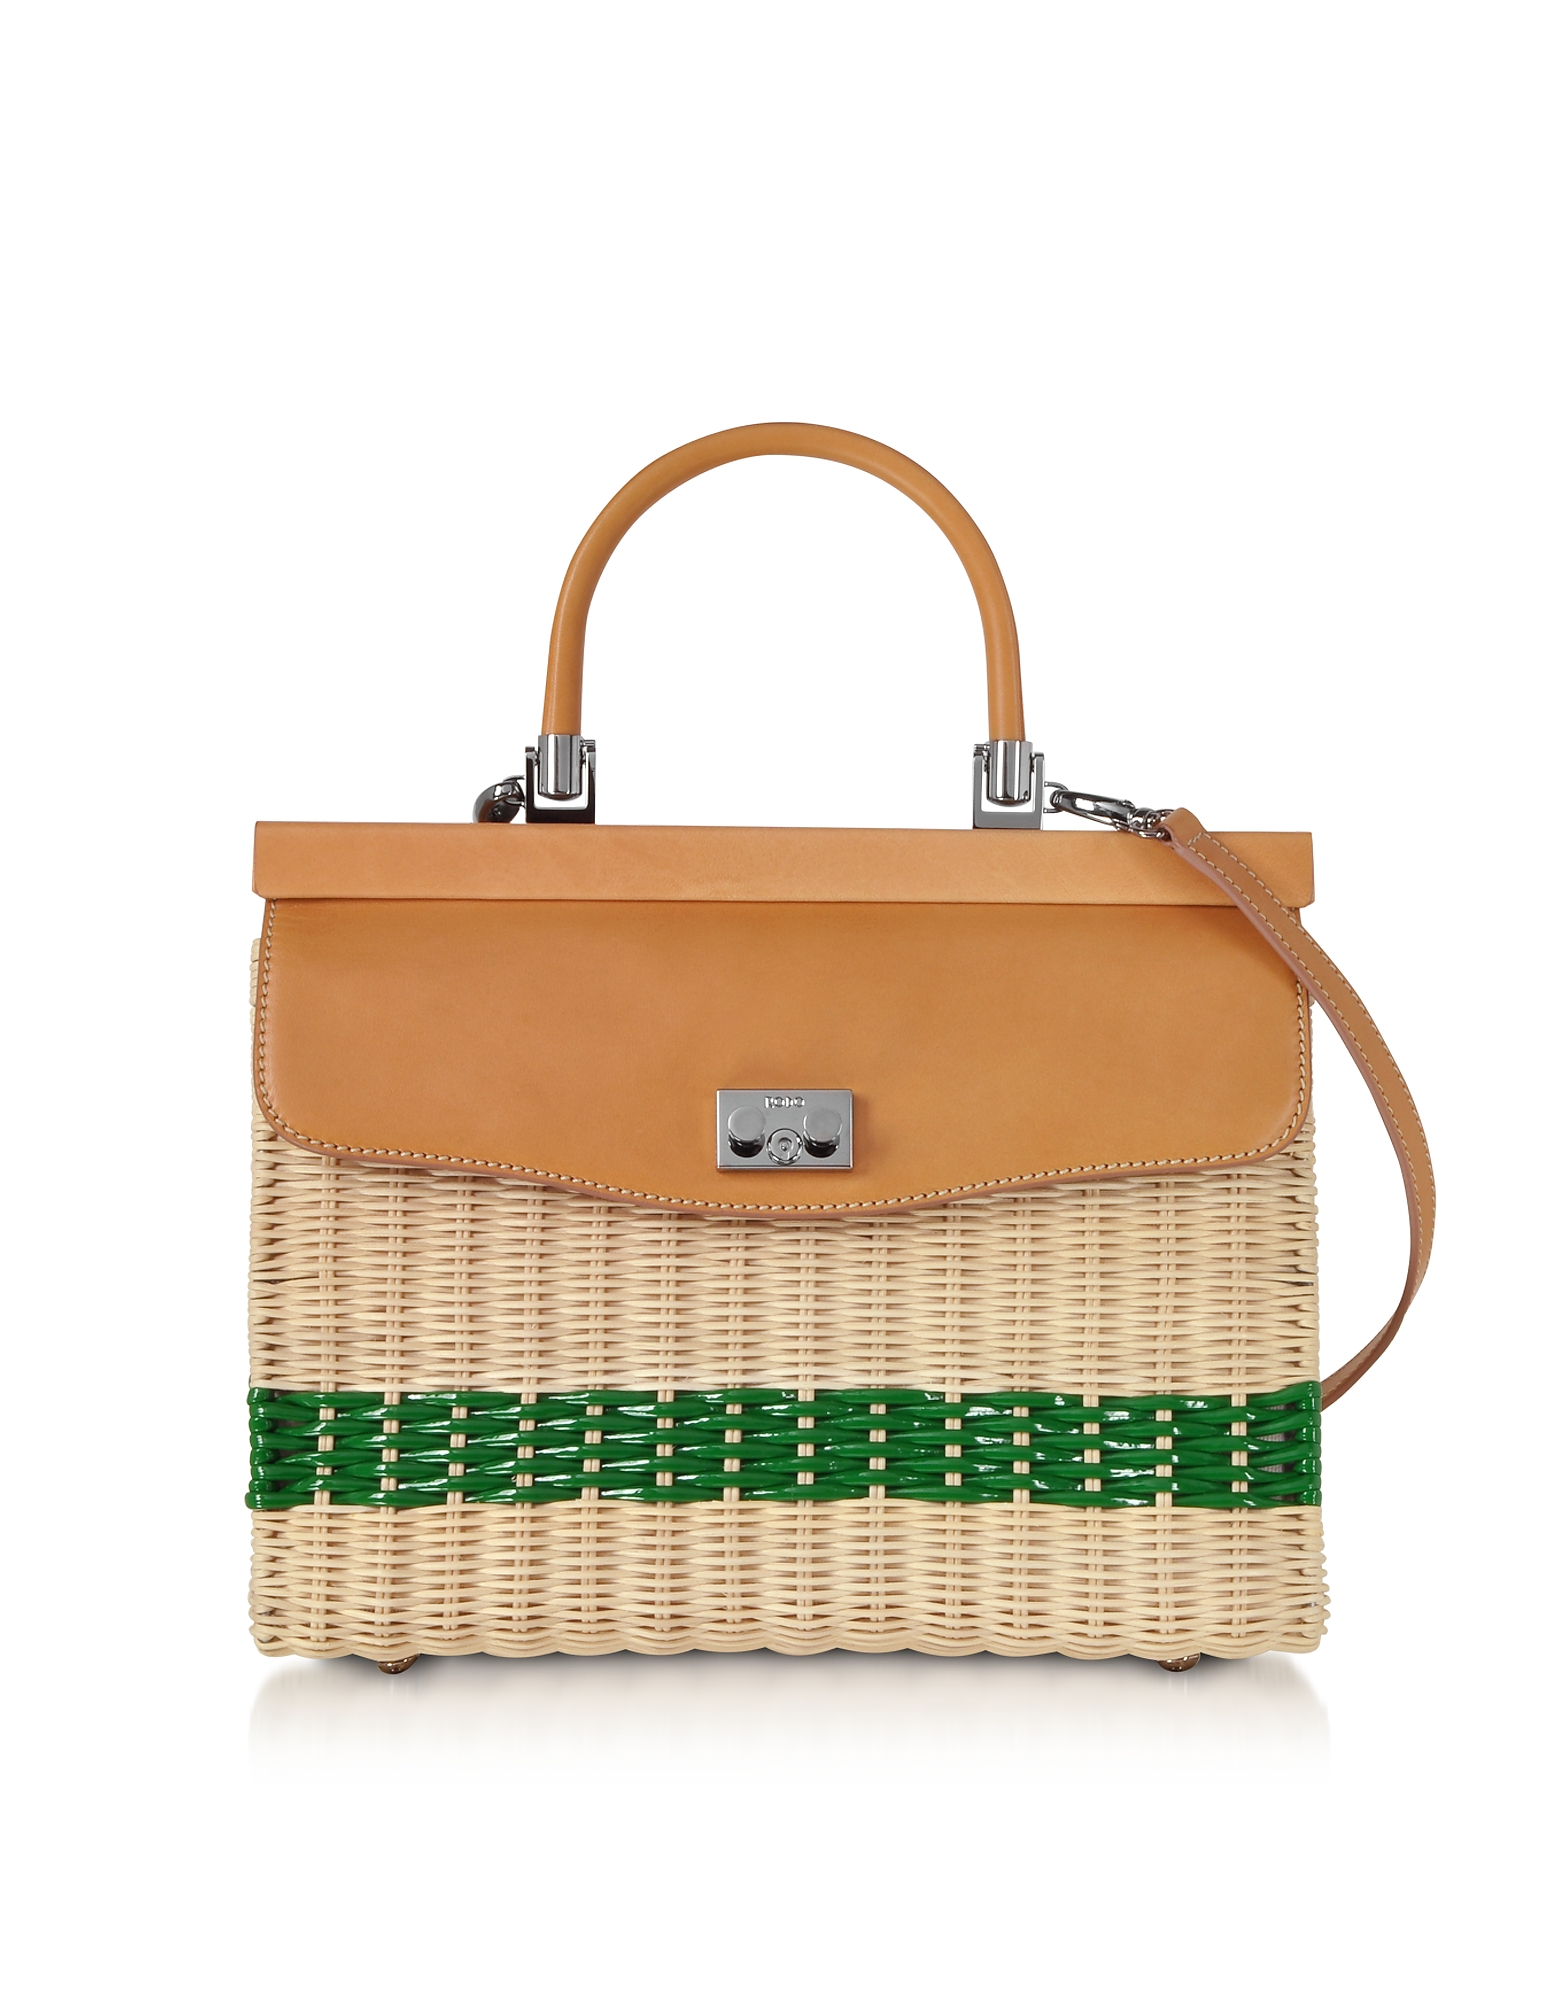 Woven Wicker and Leather Top-Handle Bag